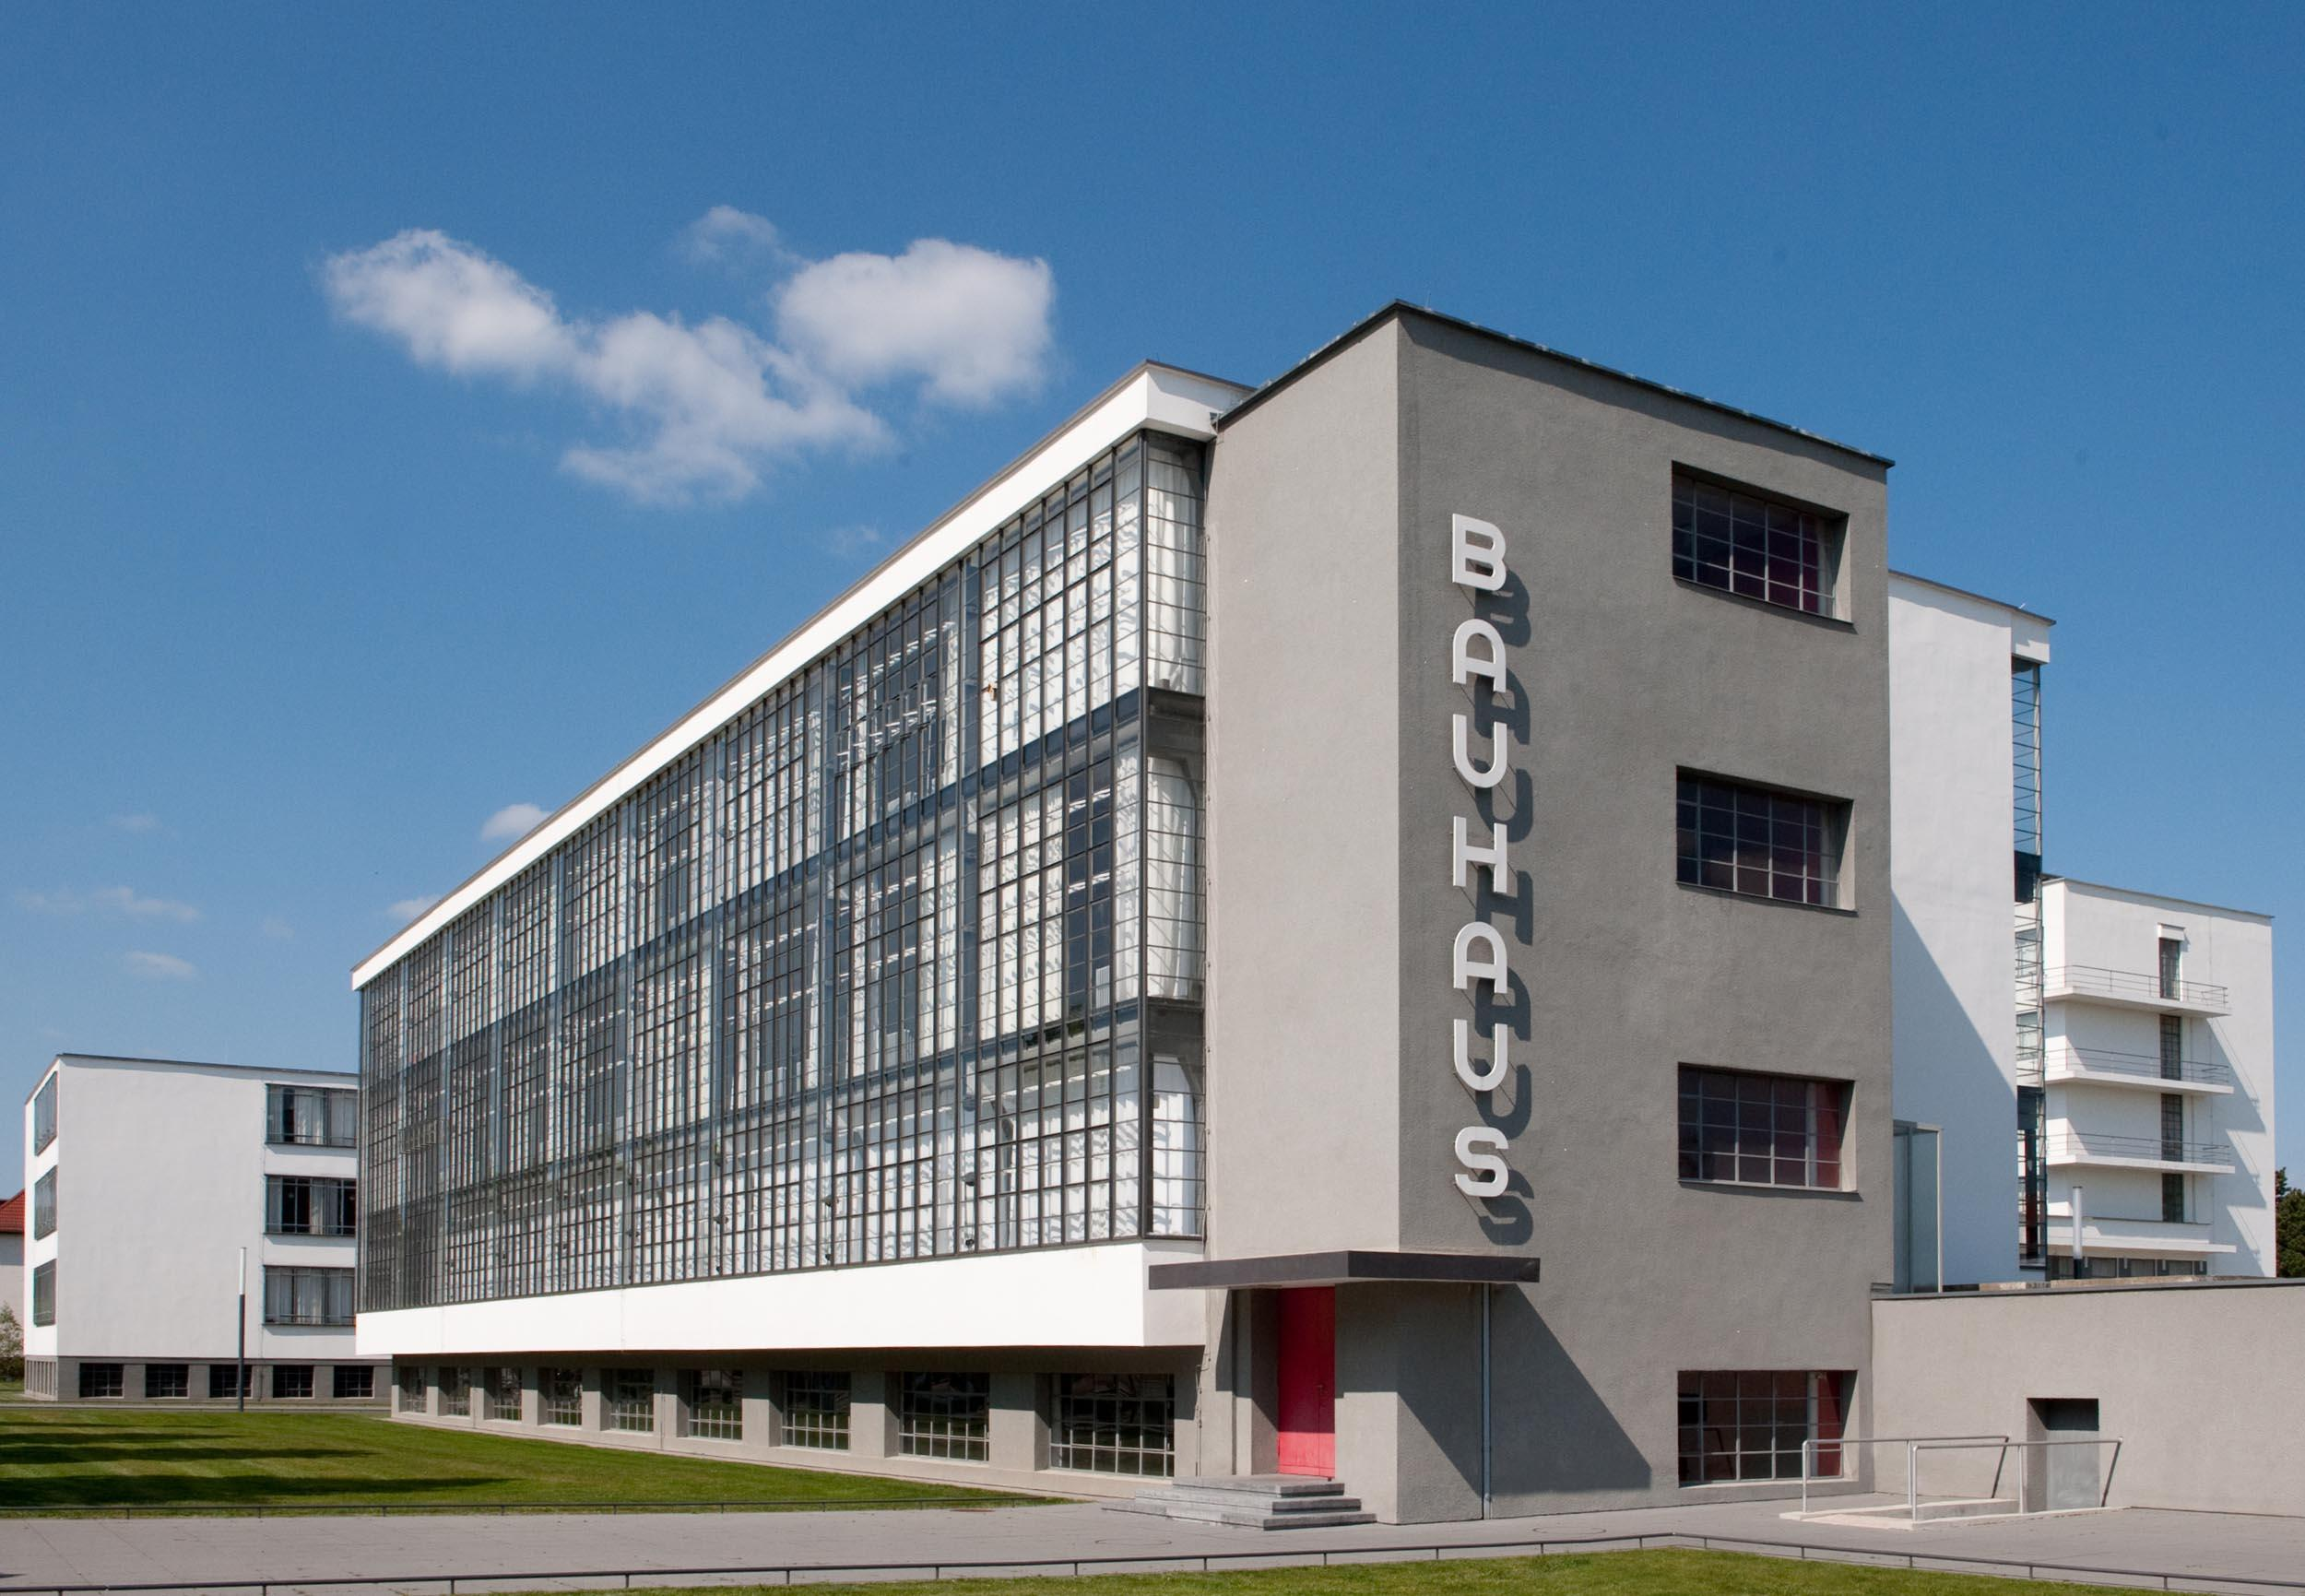 Inside the Bauhaus, the centre of the architectural movement